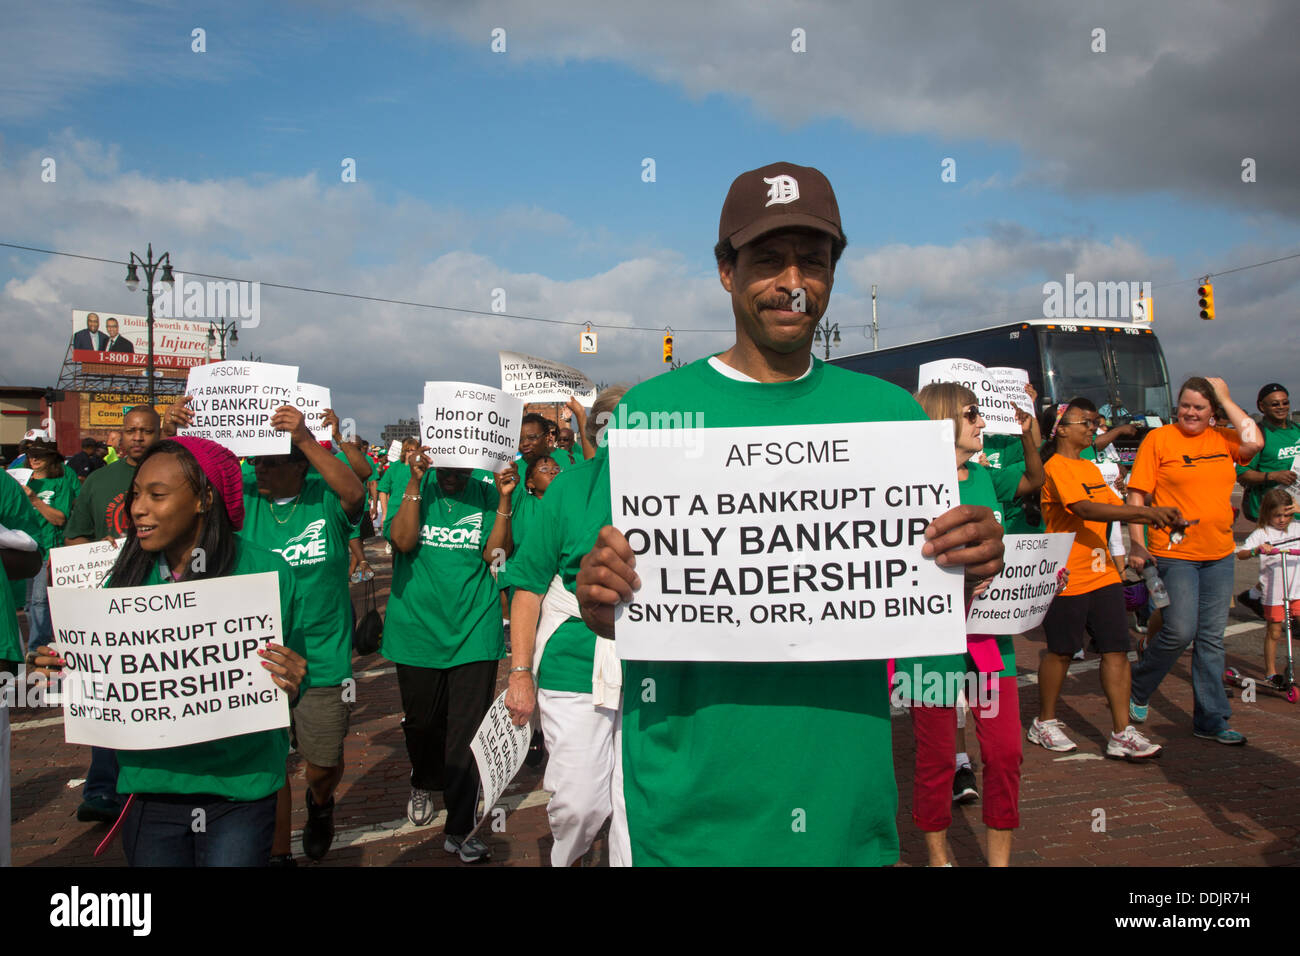 Detroit, Michigan - Detroit public employees protest the cuts expected as part of the city's bankruptcy filing. - Stock Image